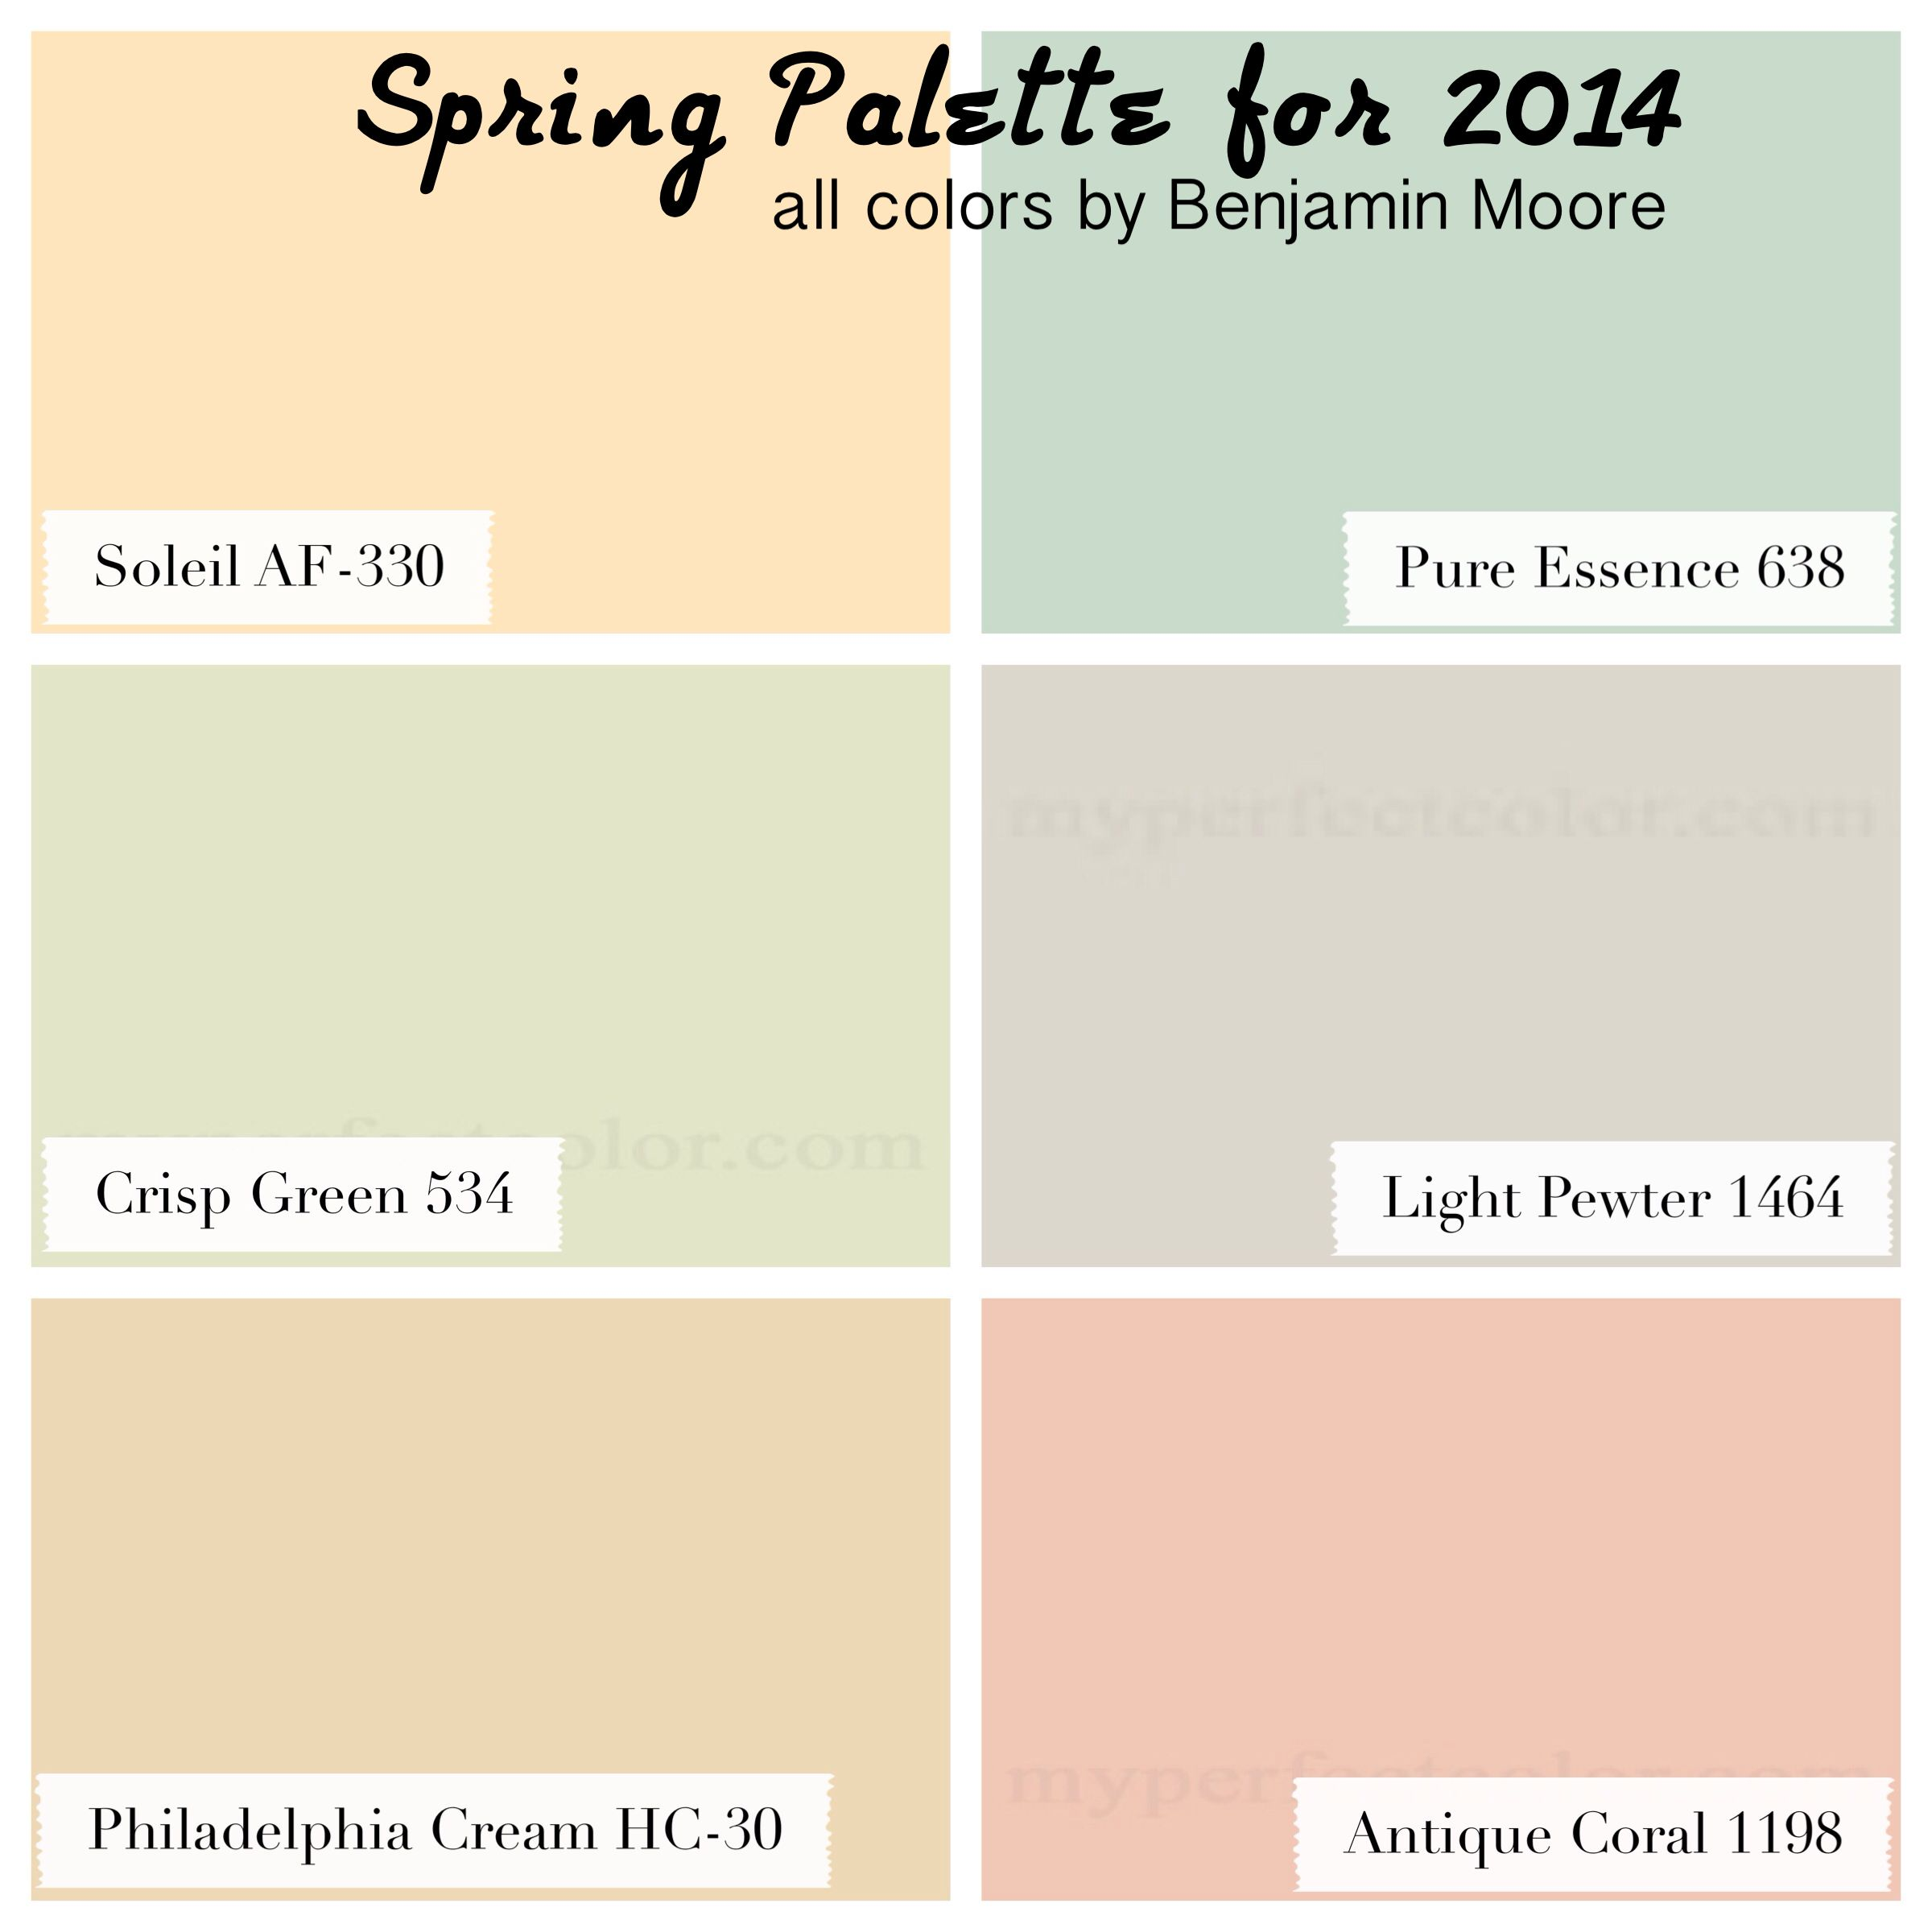 Popular Bedroom Colors 2014 pin di nelly guidry su {home} paint colors | pinterest | colori